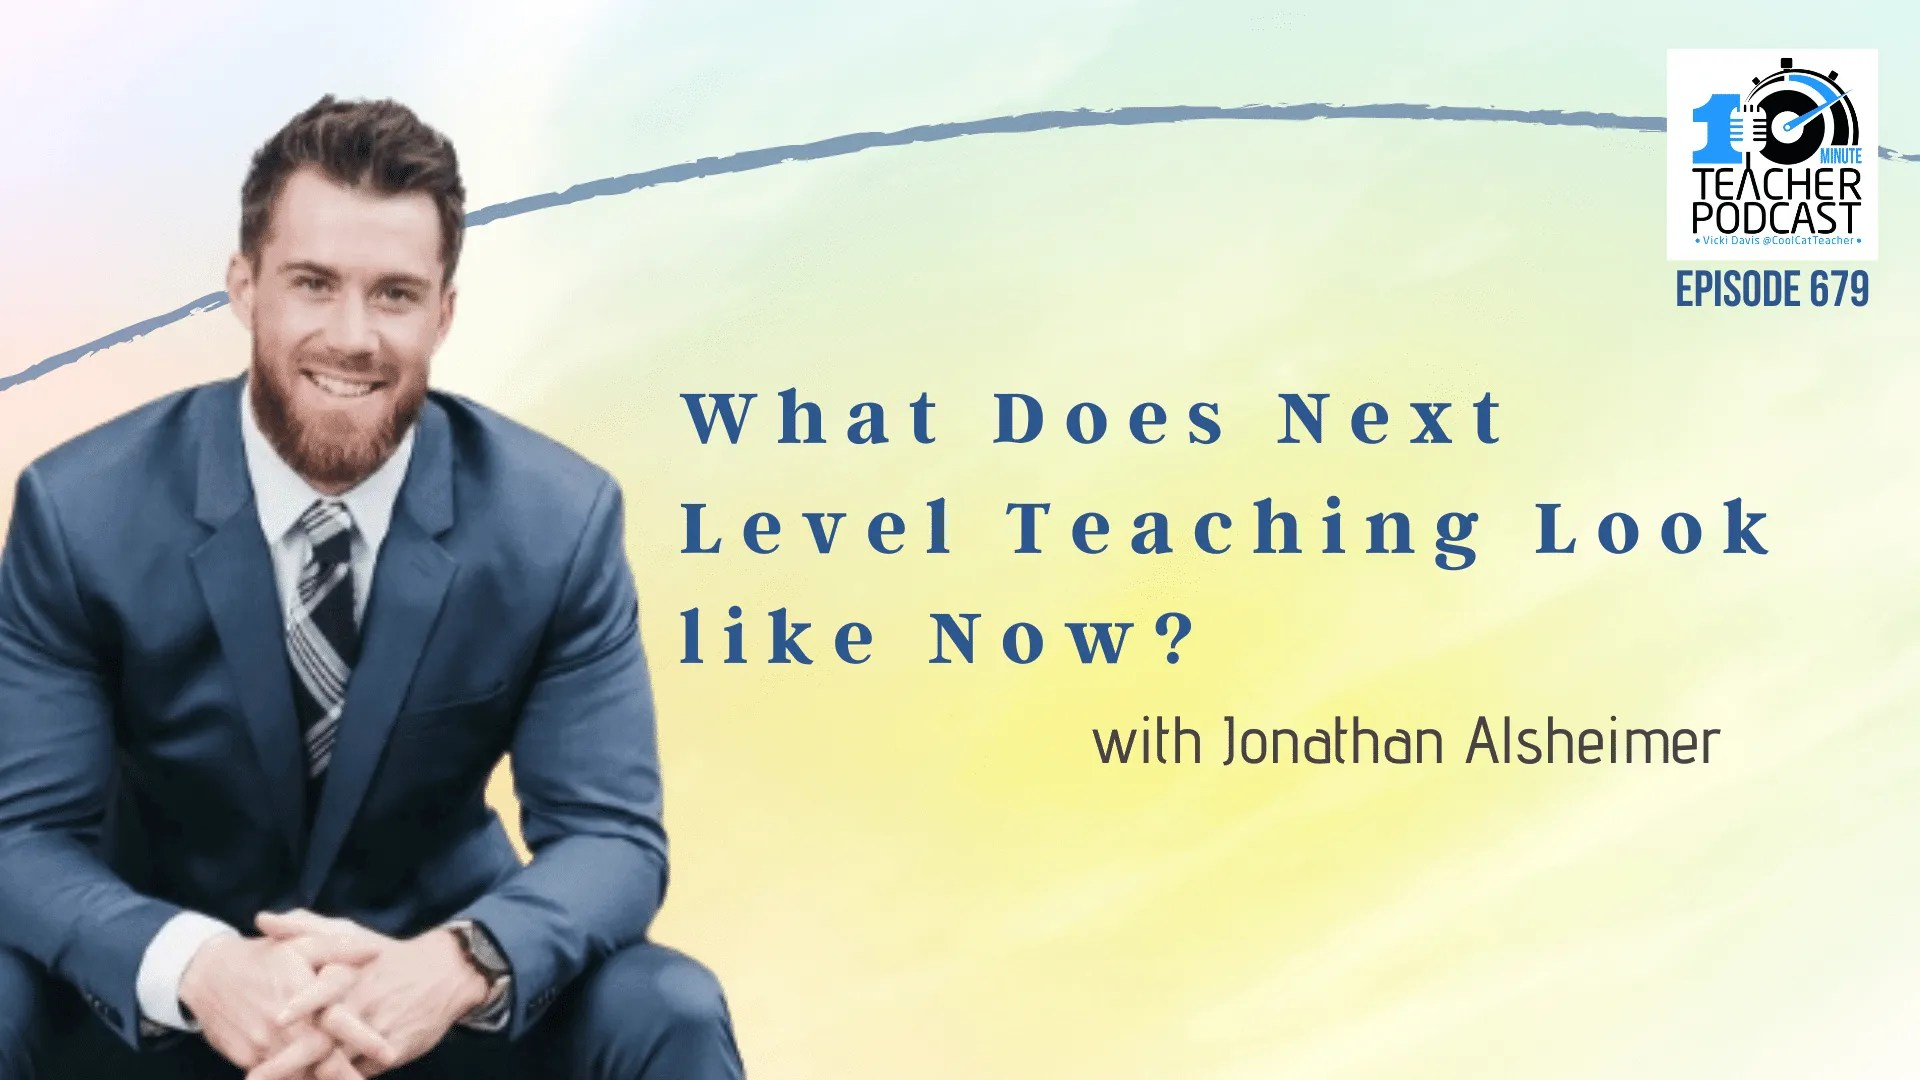 What Does Next Level Teaching Look like Now? Jonathan Alsheimer